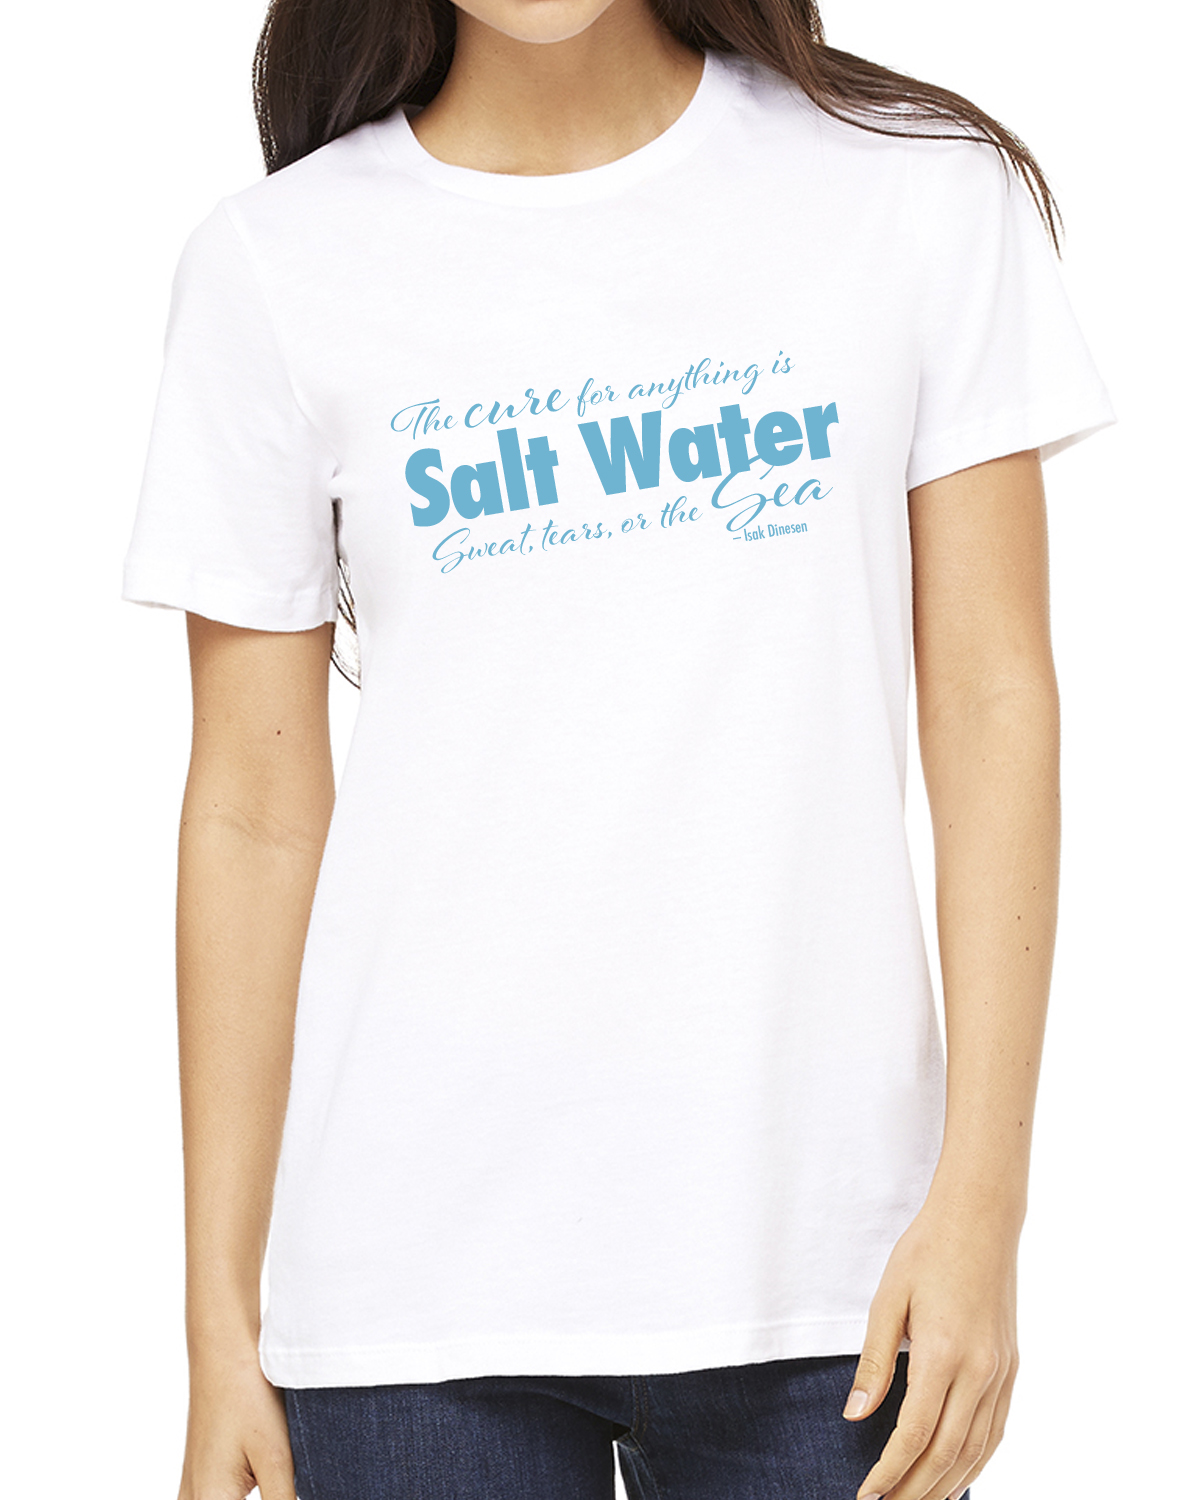 Women's Crew Neck Short Sleeve Salt Water QuoteT-shirt (White)